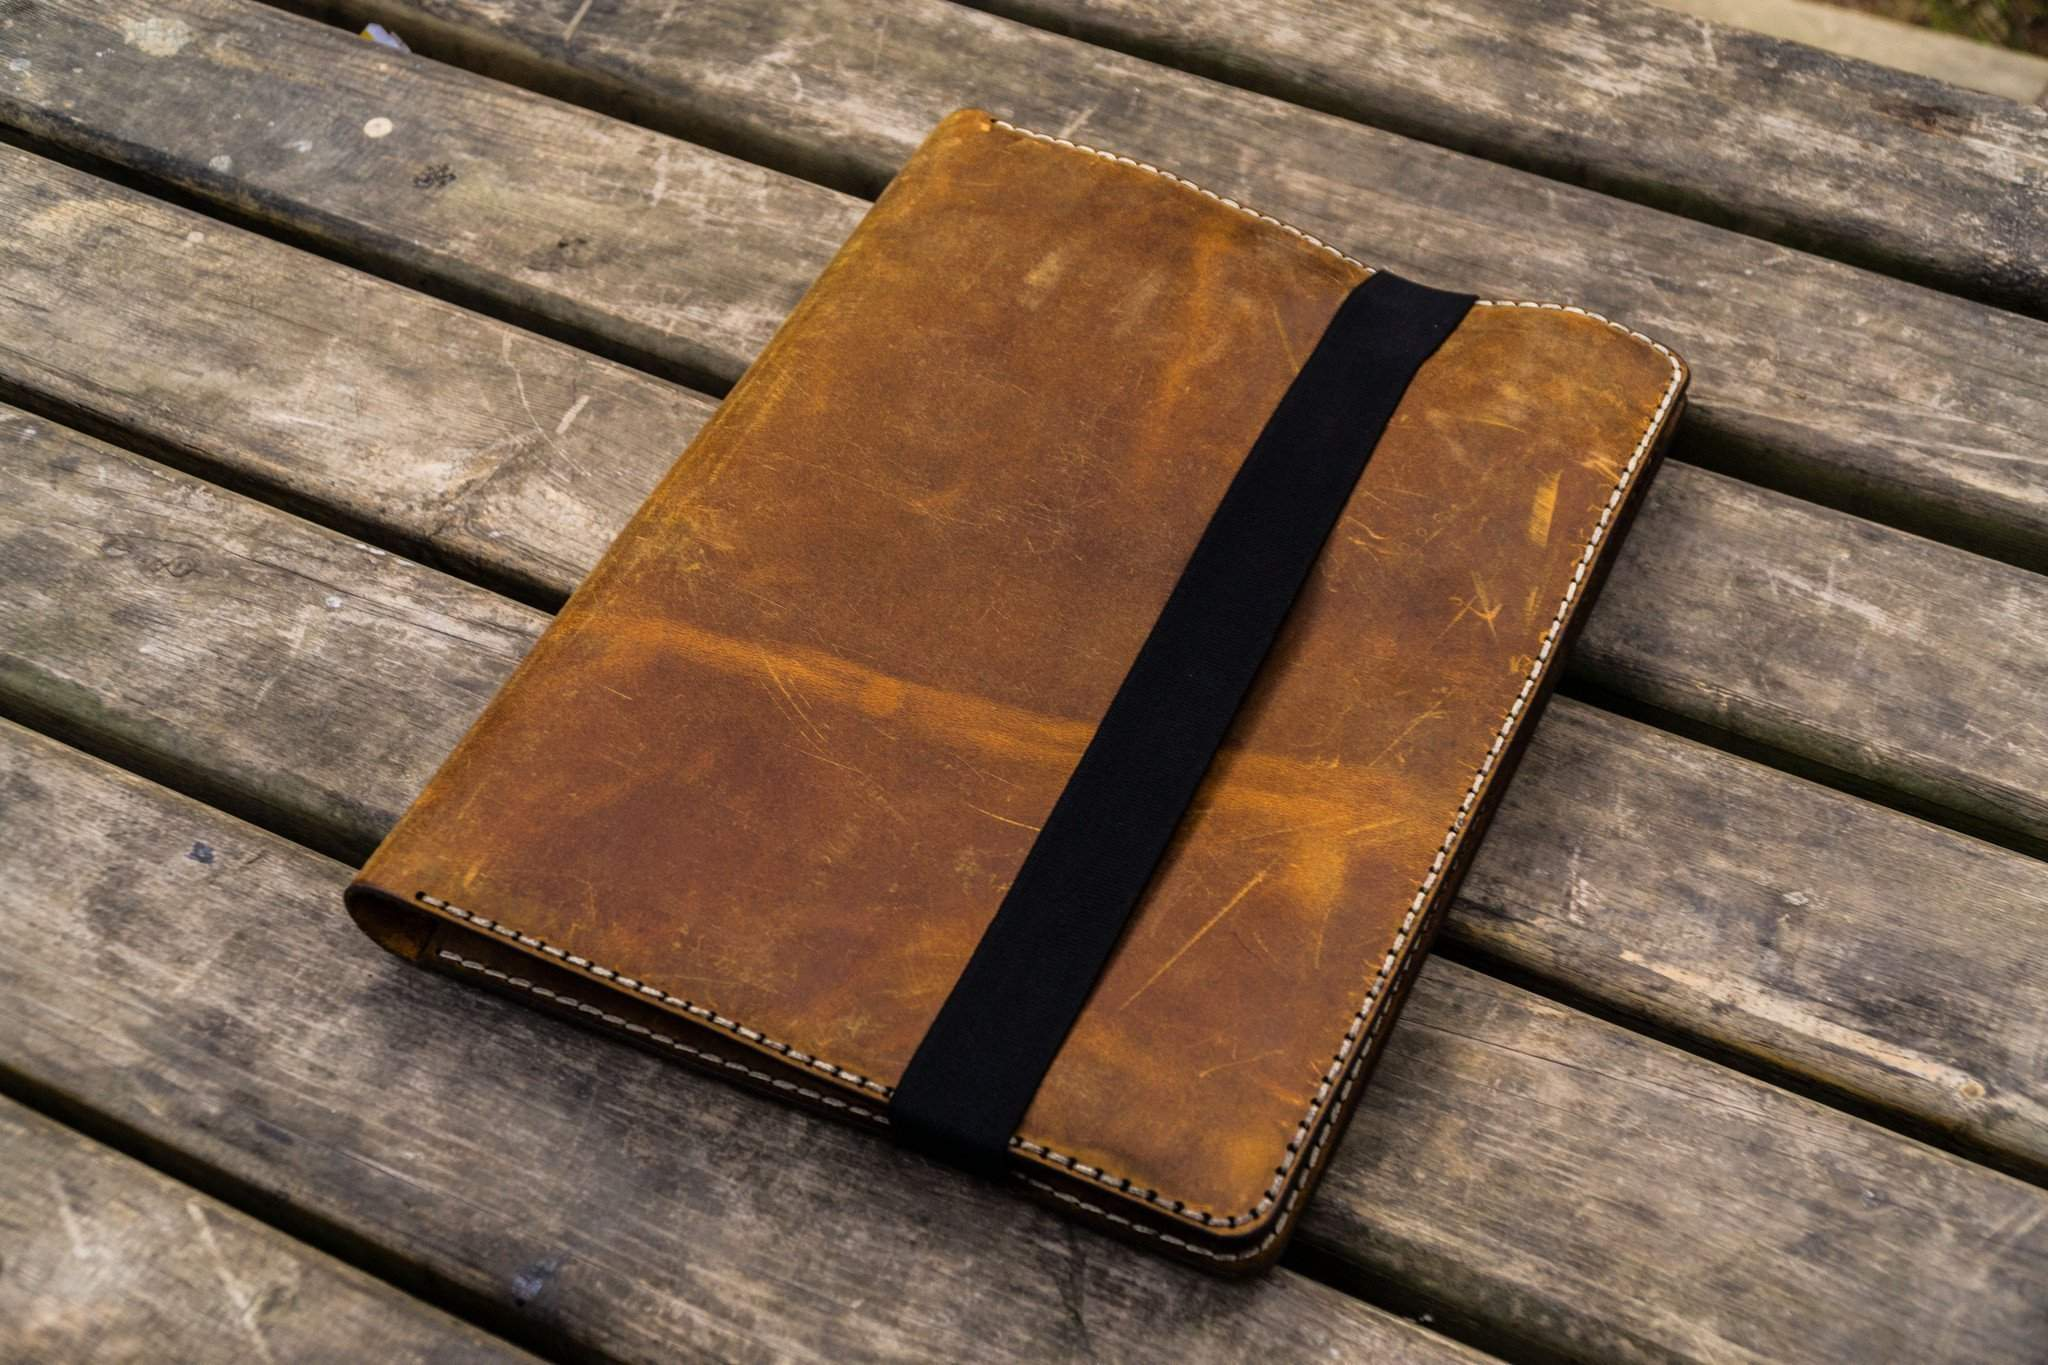 Full Grain Leather Hide Crazy Horse Leather CP 4-5 oz Tooling Leather Sheets for Crafts Brown, 4 x 12 Cowhide Leather